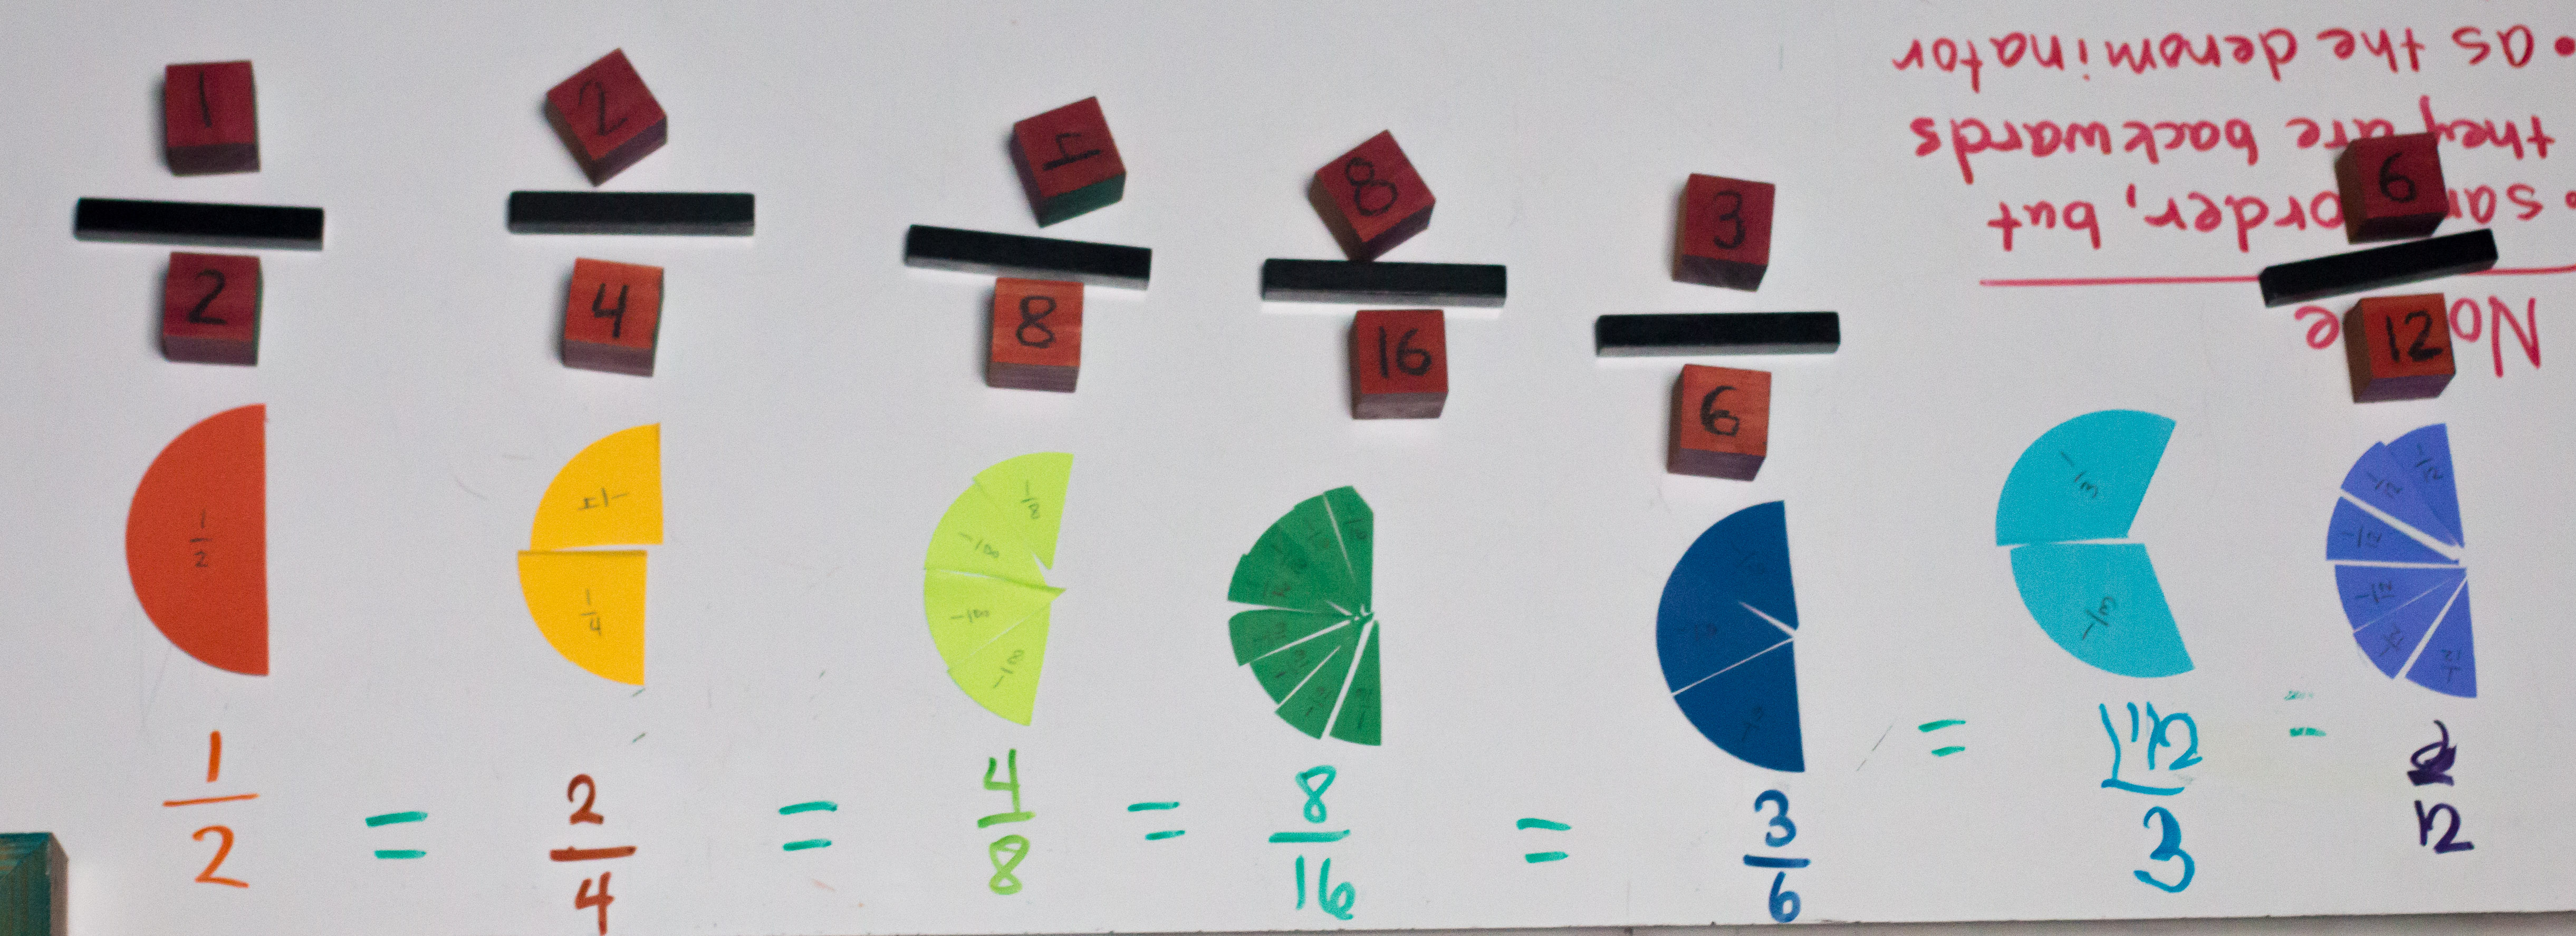 day 2 fractions (1 of 4)